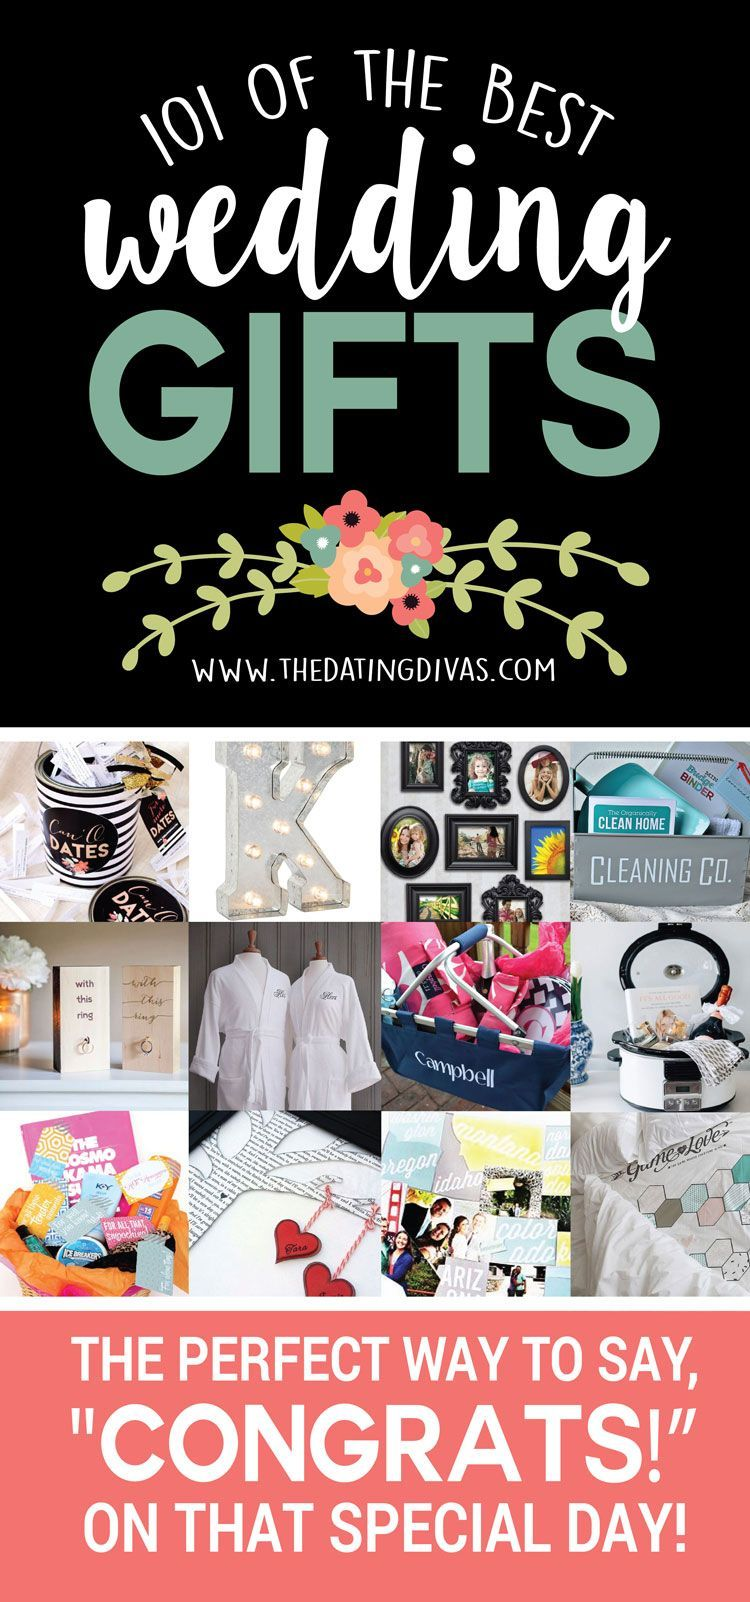 101 Of The Best Wedding Gifts Gift Weddings And Diva